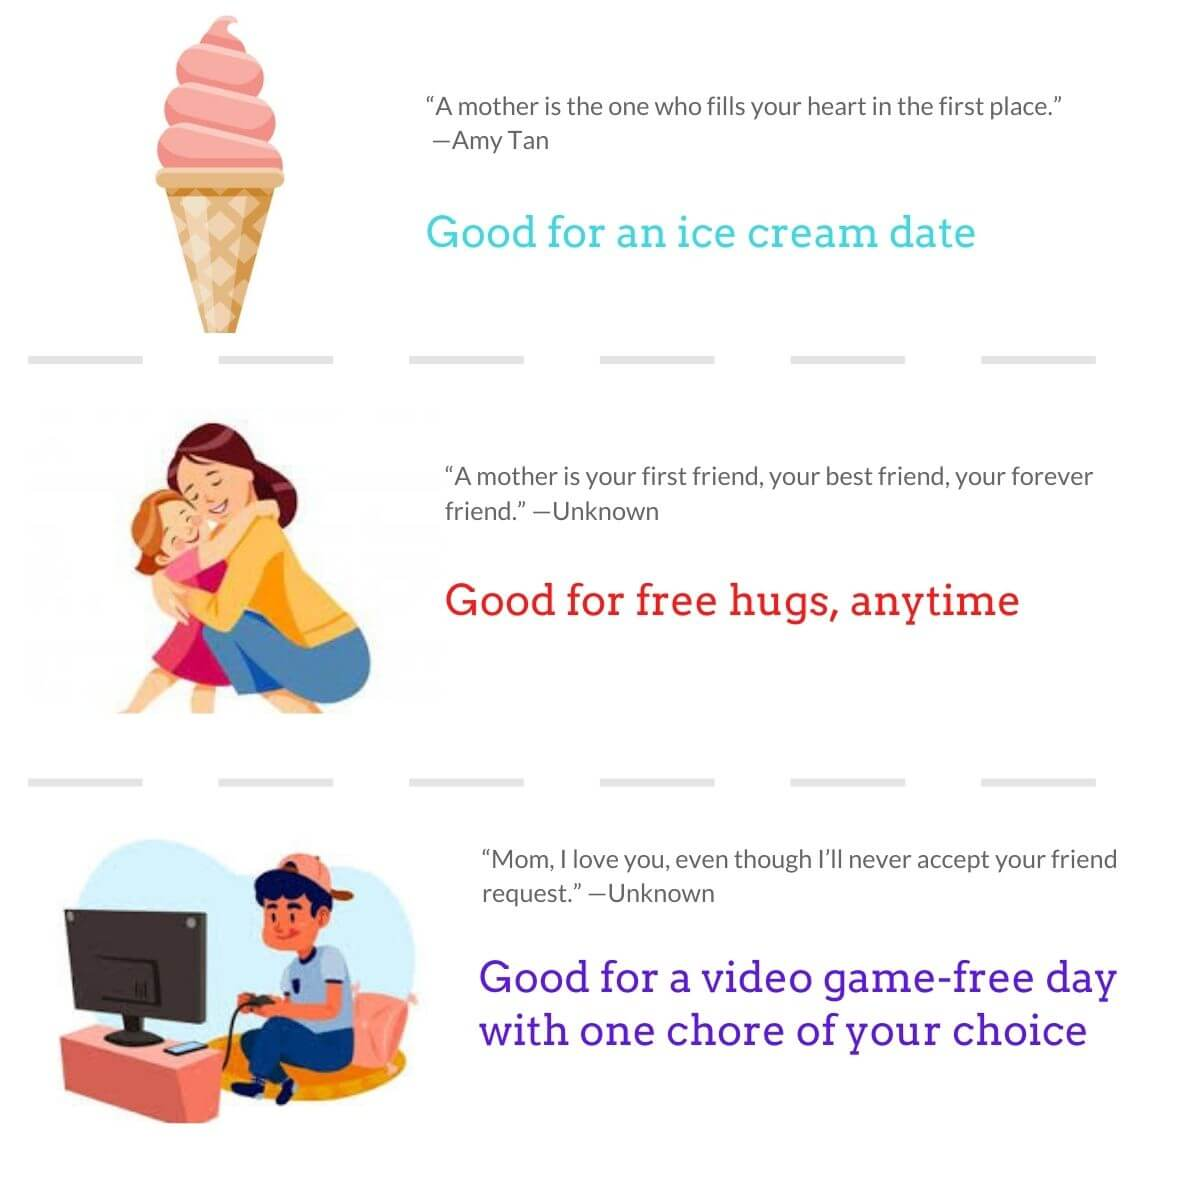 The Focus Foundation's Happy Mother's Day Coupons and Ideas - The Focus Foundation